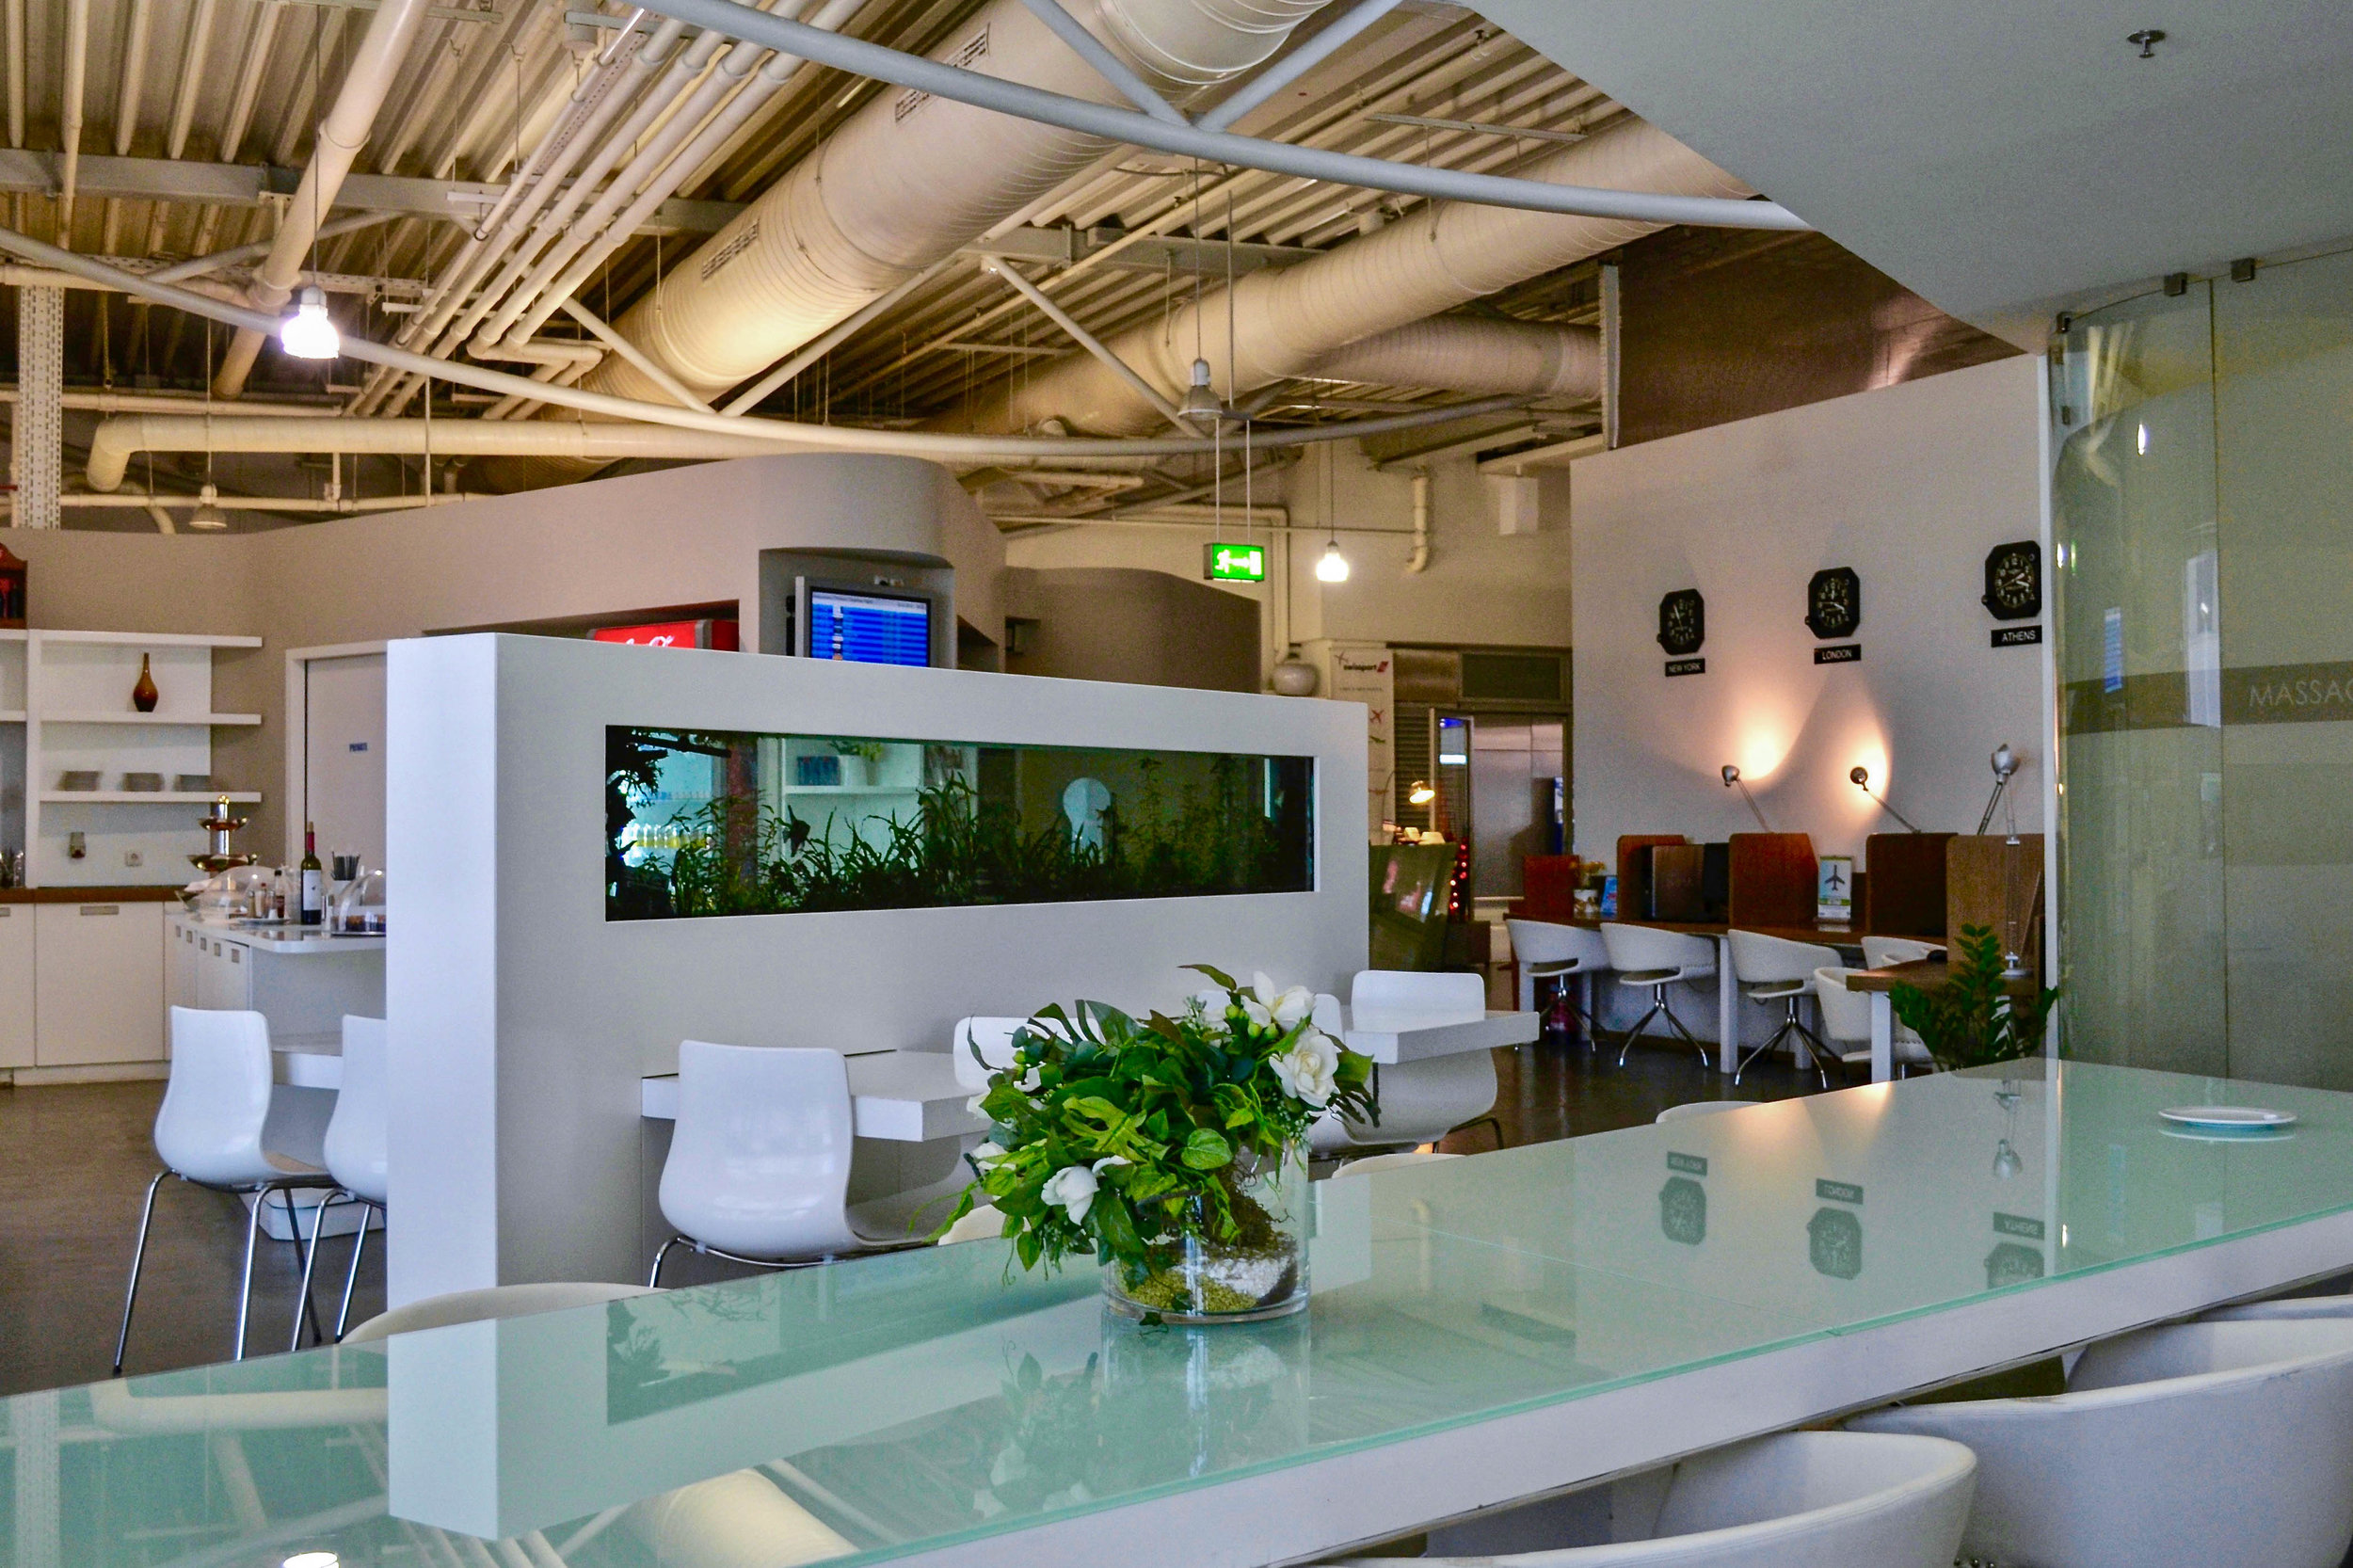 The Swissport Executive Lounge in Athens, Greece